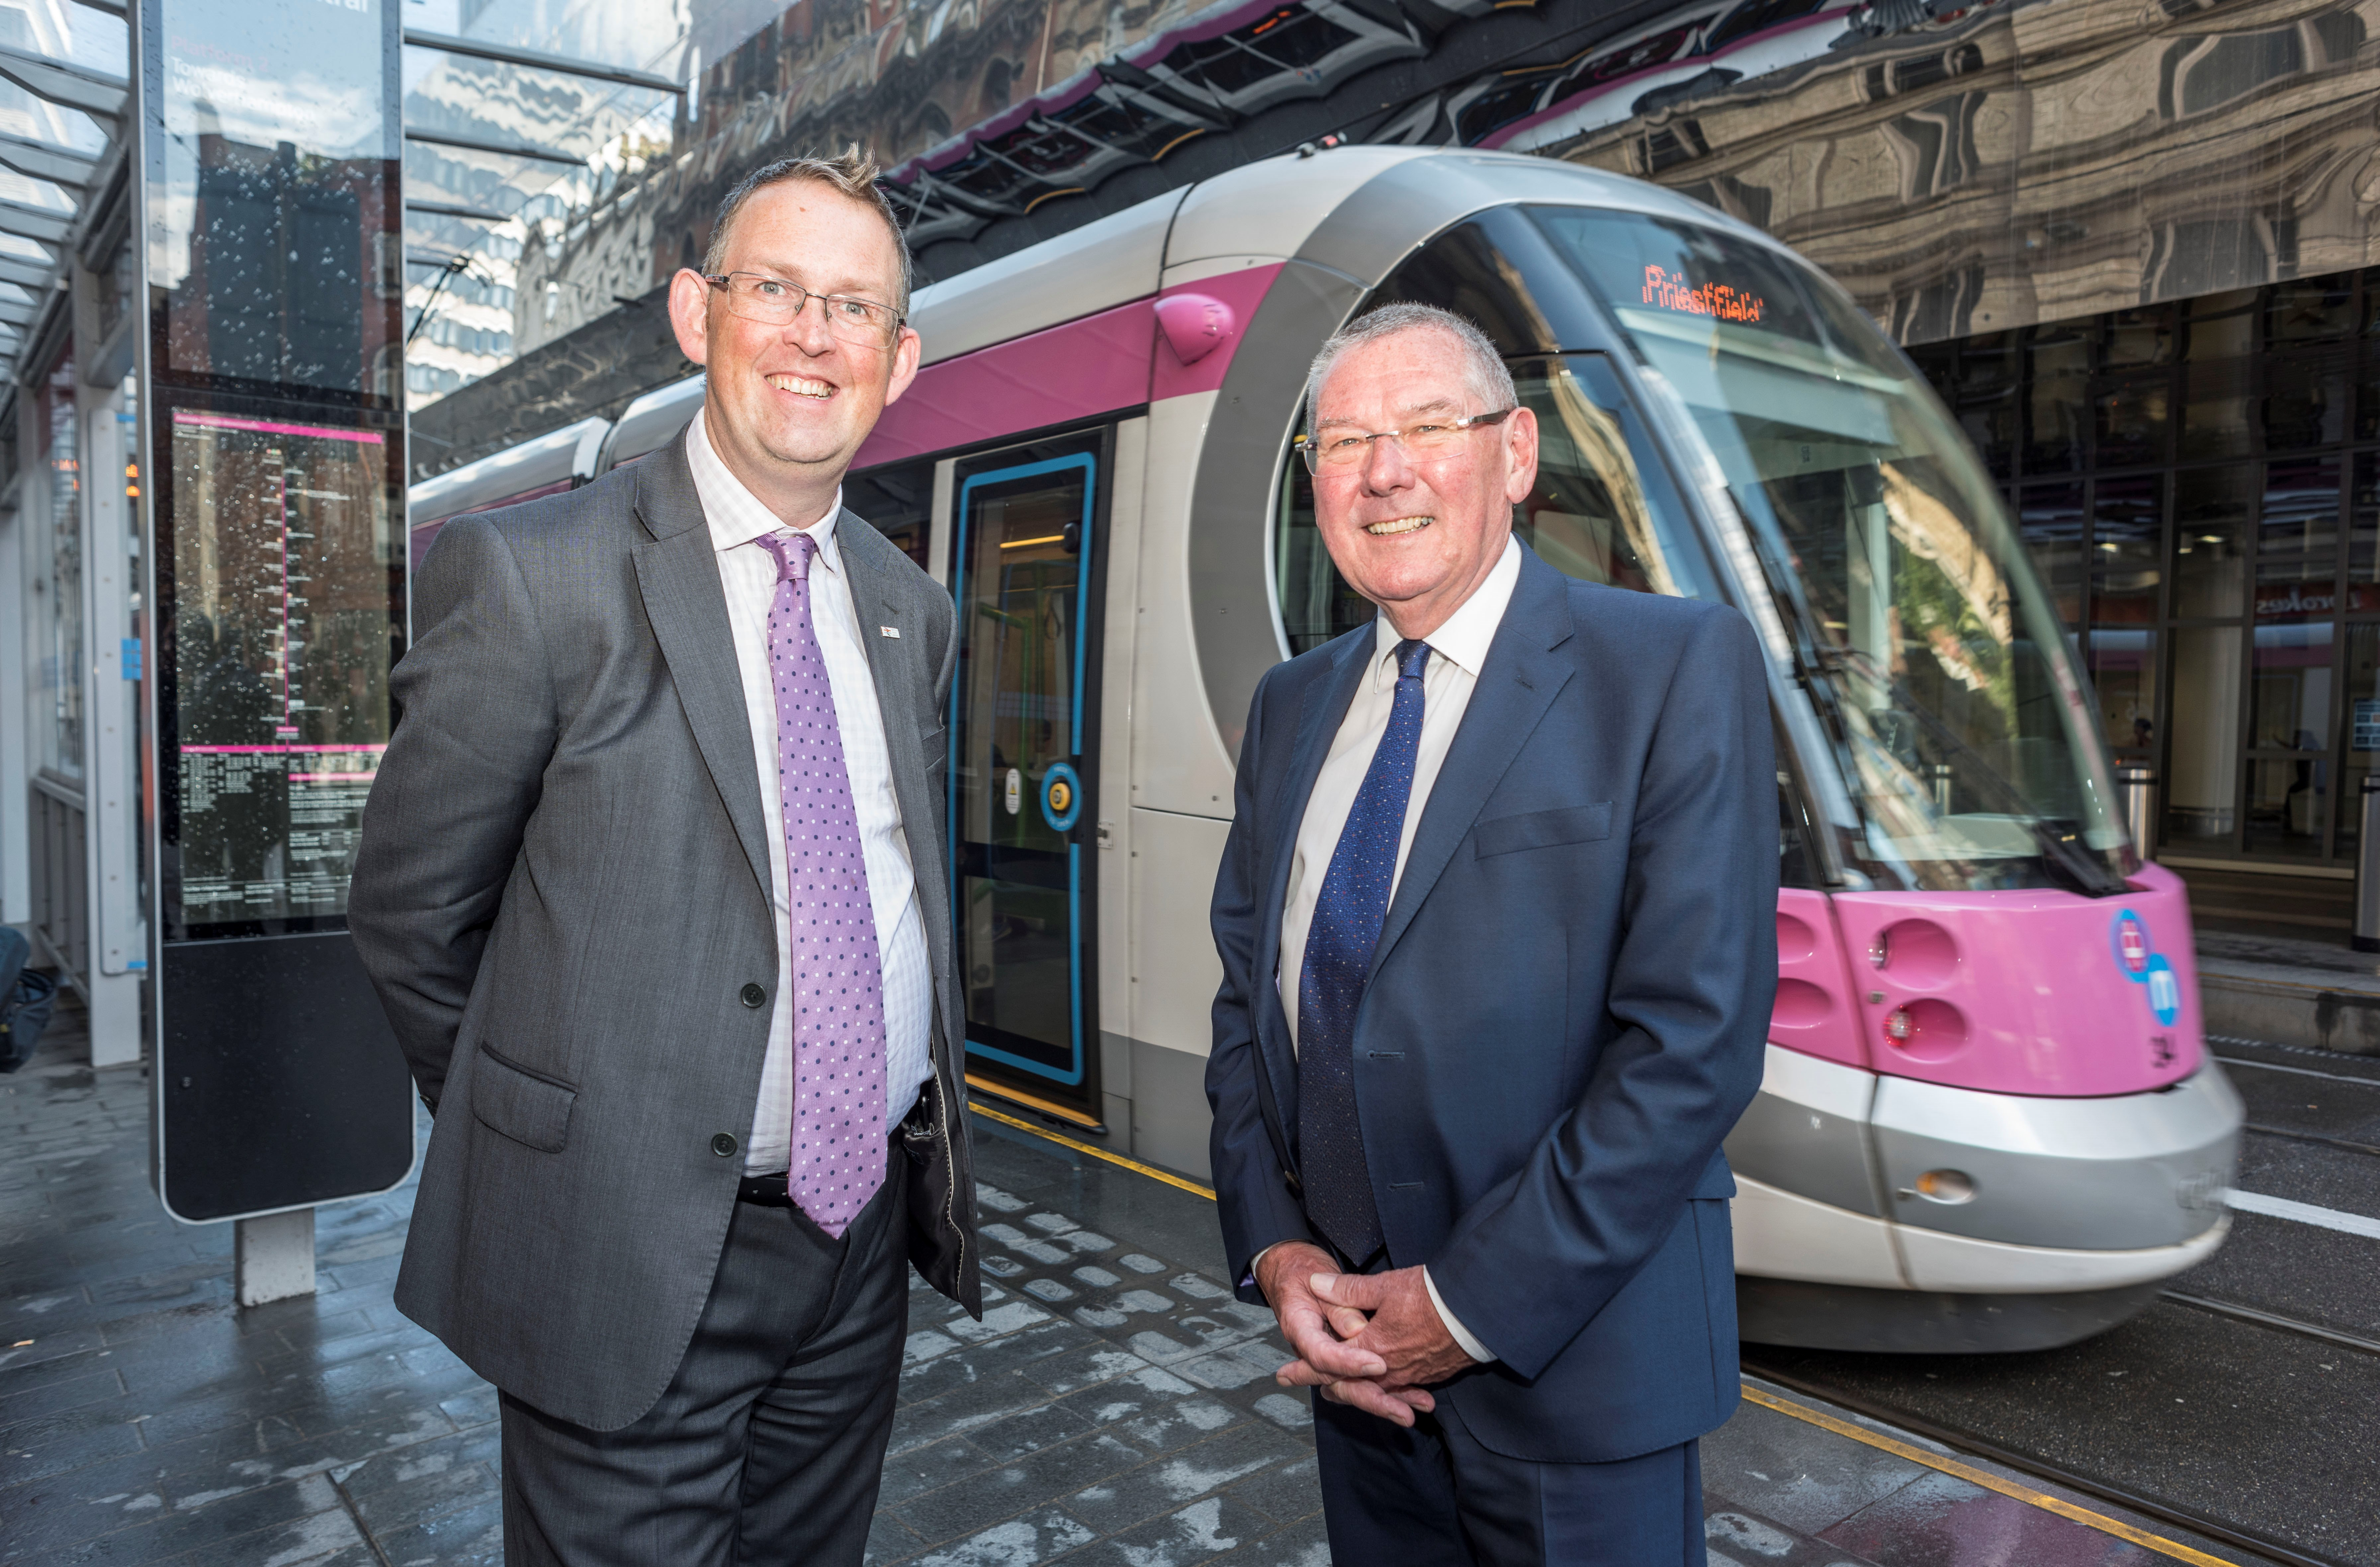 Midland Metro extension to Birmingham Edgbaston gets £59.8m green light from government